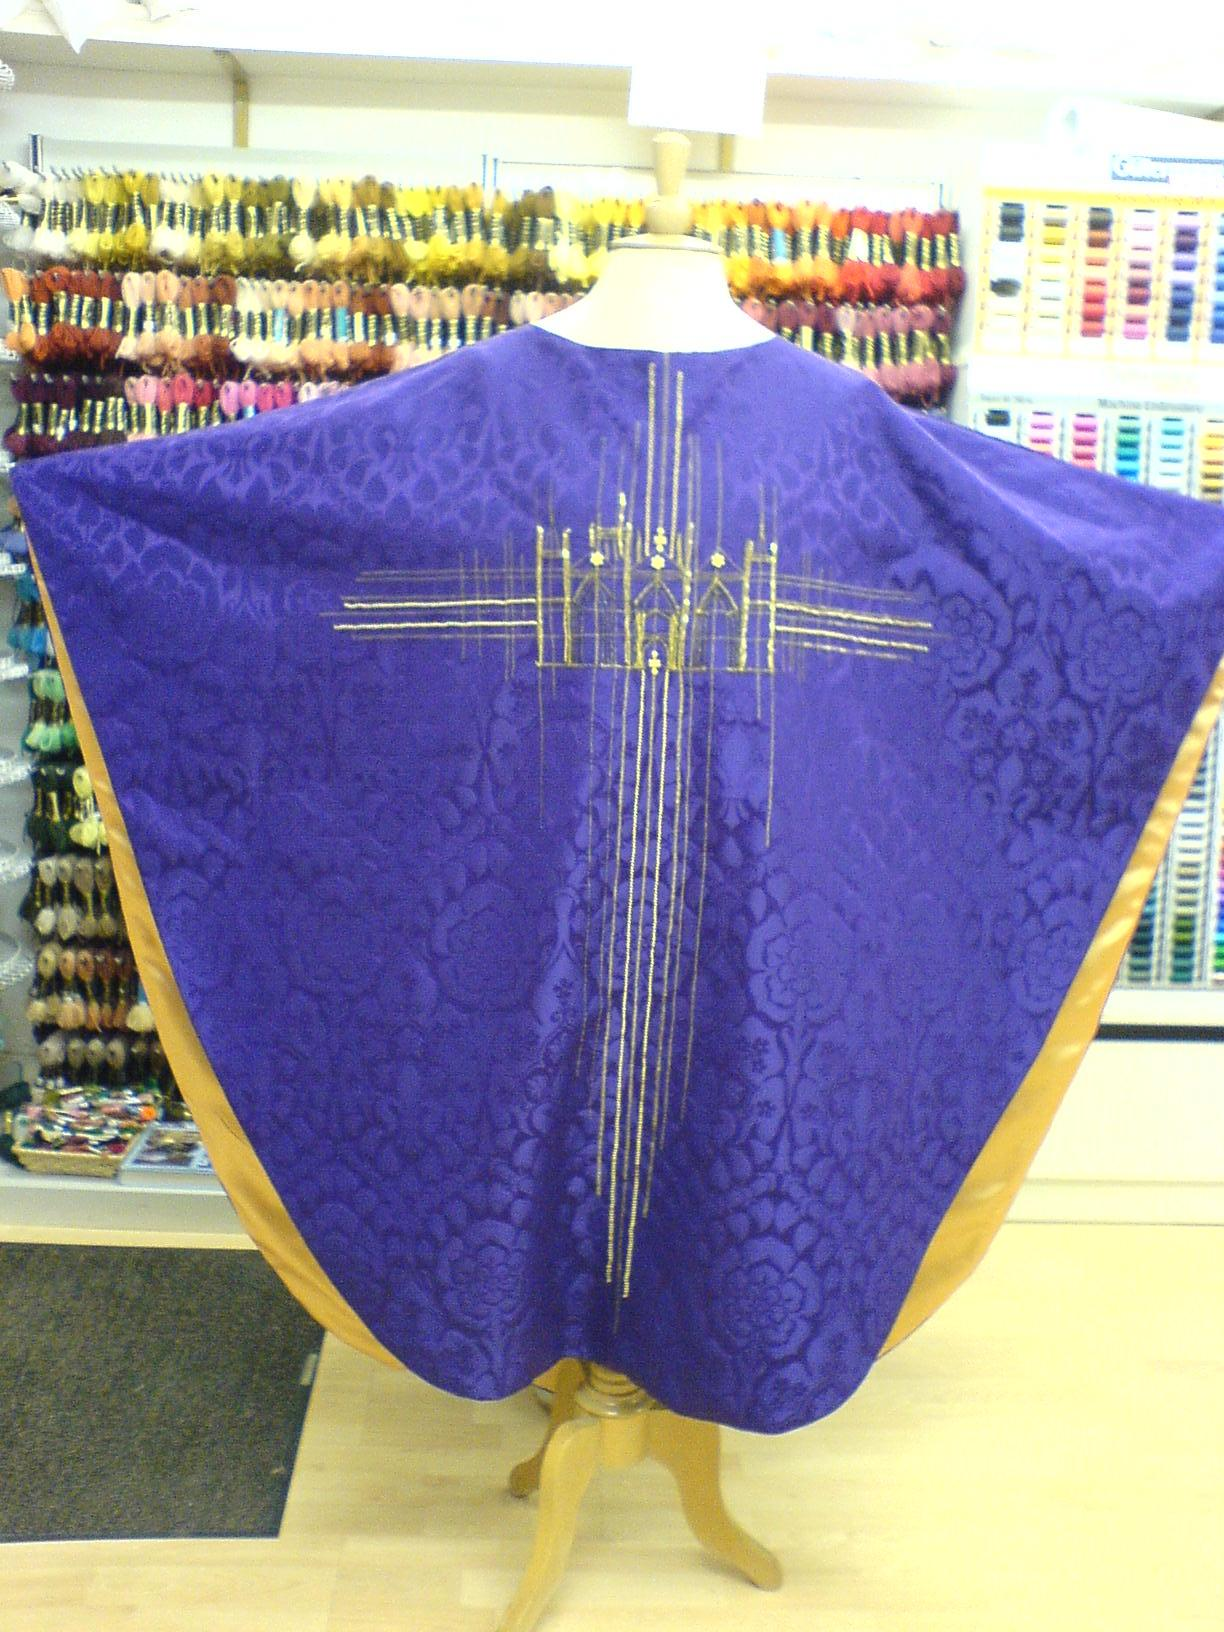 Chasuble Commission from The Sewing Shop